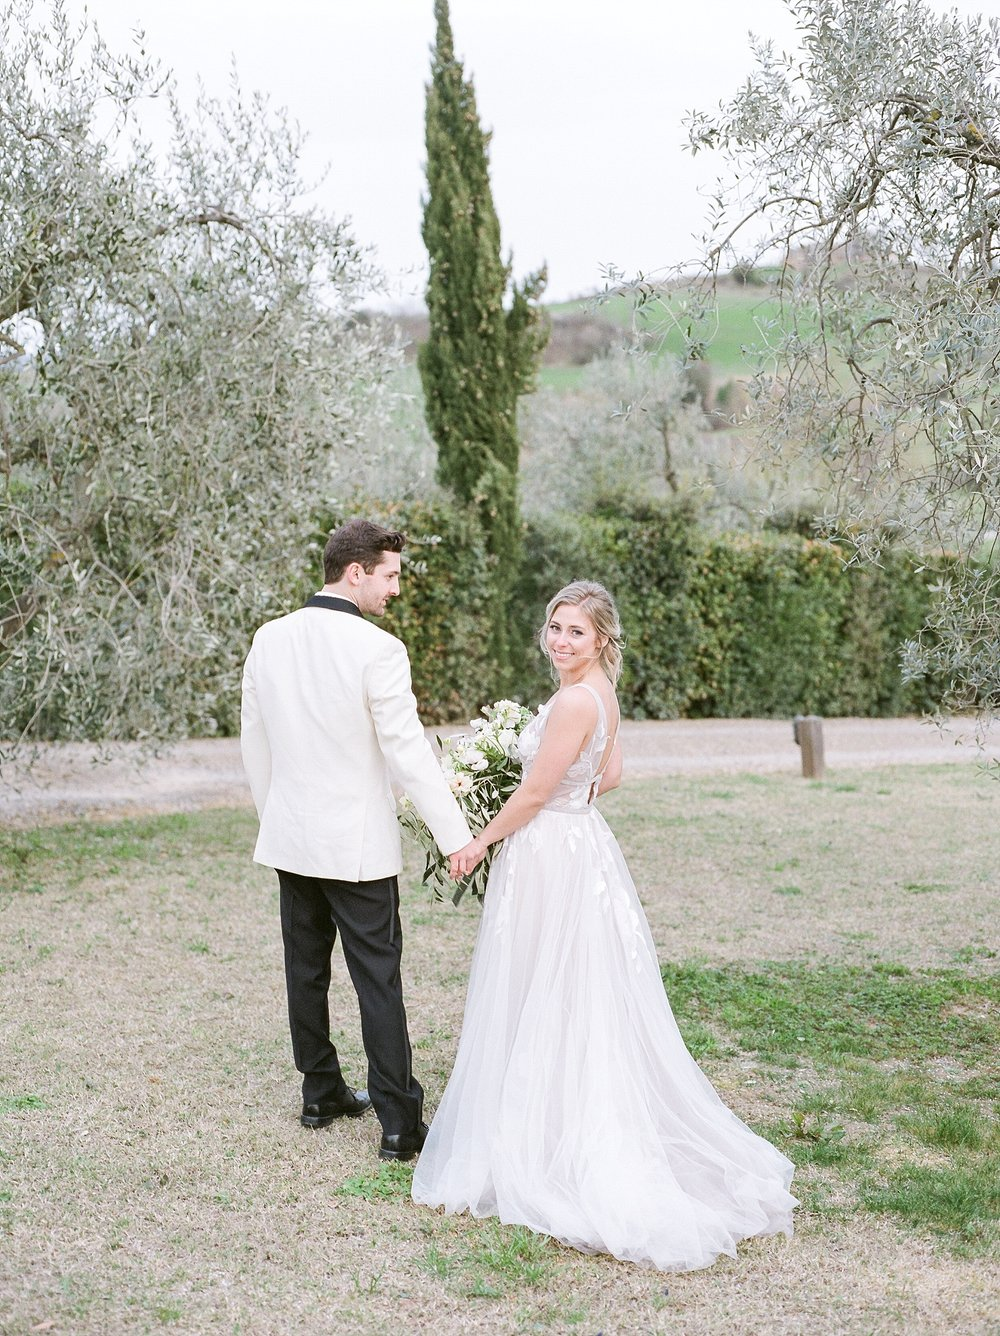 All White Destination Wedding in the Hills of Tuscany Italy at Estate Borgo Petrognano by Kelsi Kliethermes Photography_0058.jpg